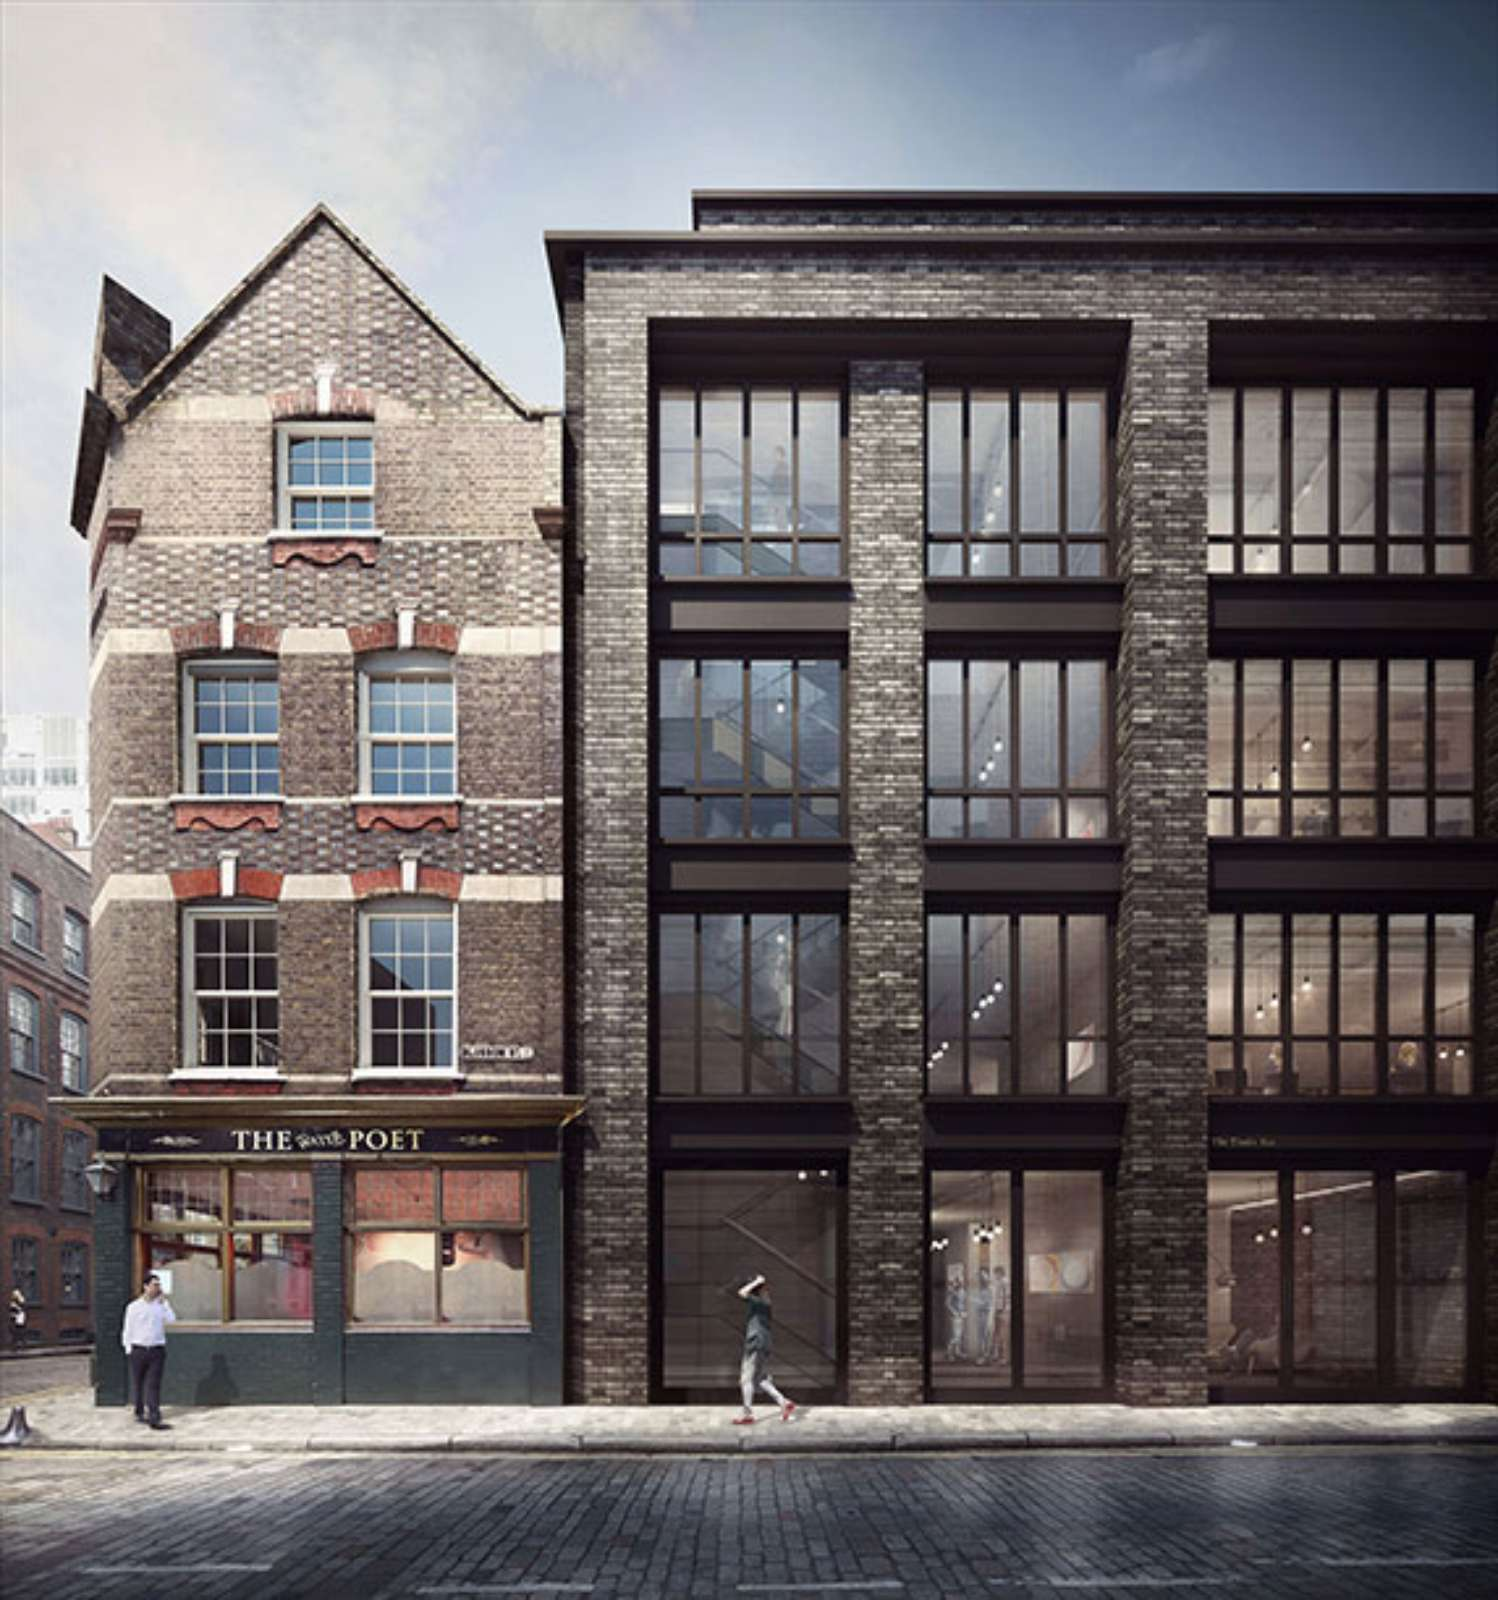 From Historic Warehouse To Splendid New Apartment S In London: Blossom-Street-Planning-by-Duggan-Morris-Architects-14